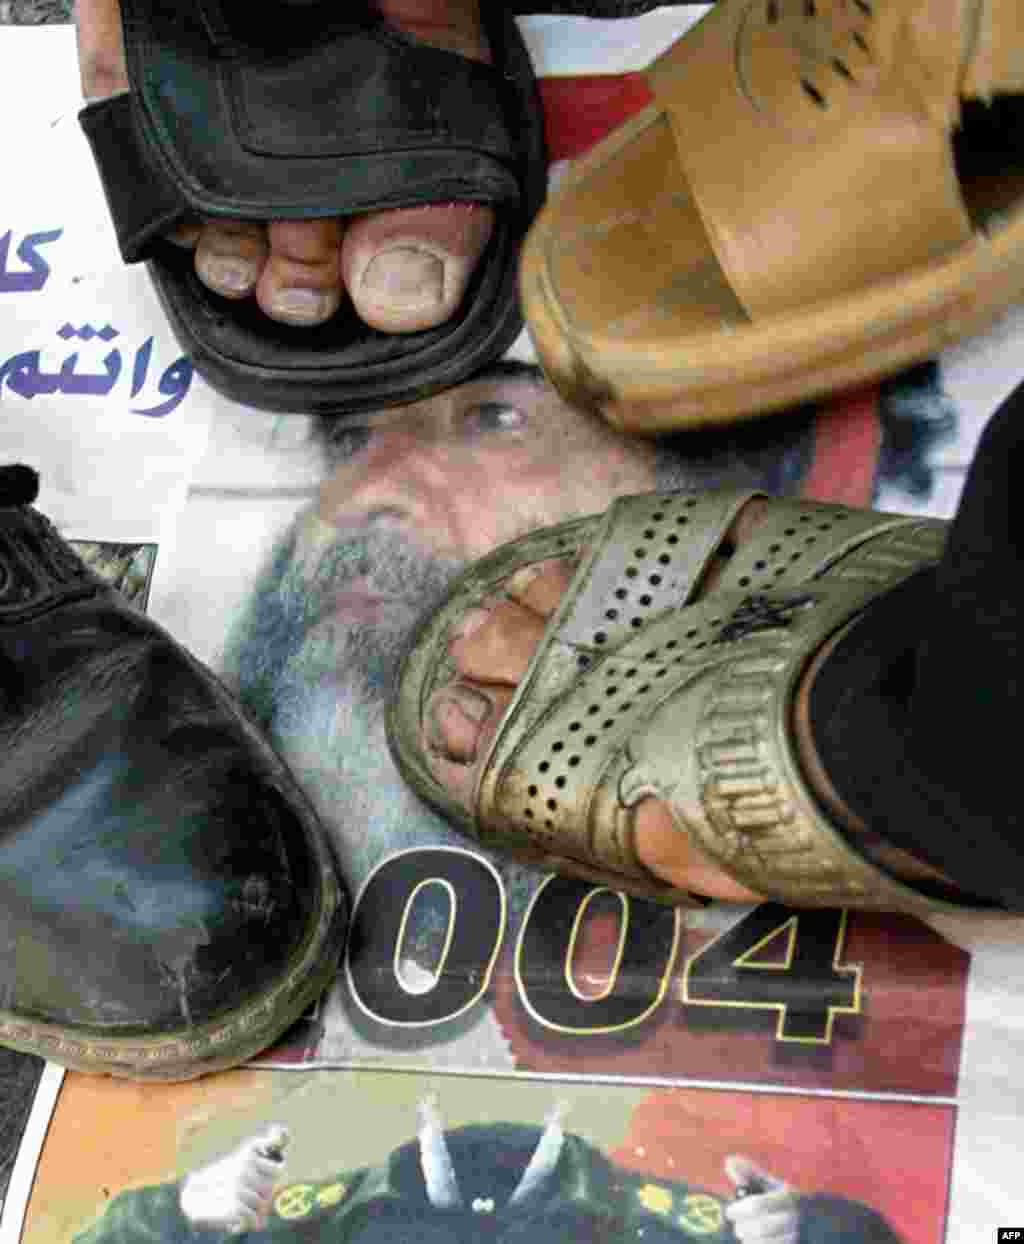 Iraqis stamp on Saddam Hussein's photo at a Baghdad demonstration in July 2004. He retained some support among Iraq's Sunni minority, but most Iraqis celebrated his downfall and welcomed his trial.